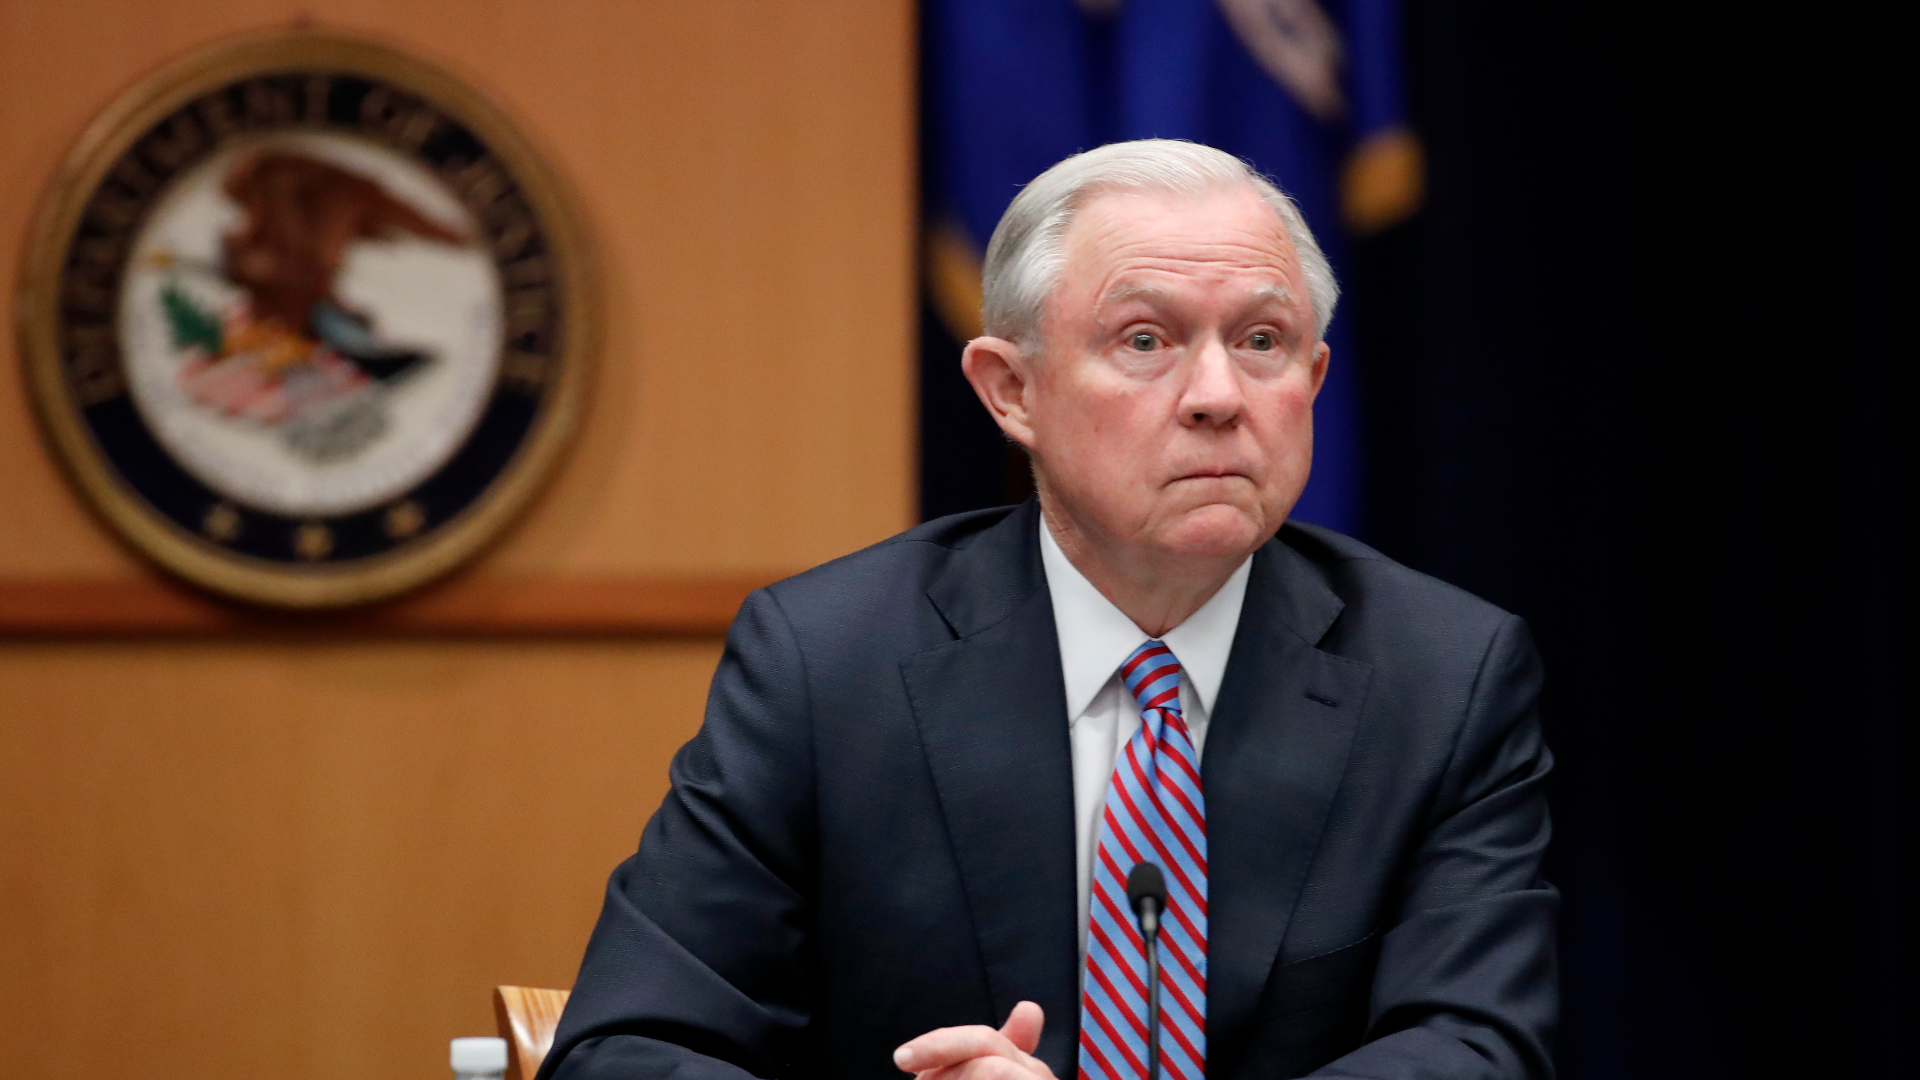 Sessions offered in recent months to resign as attorney general